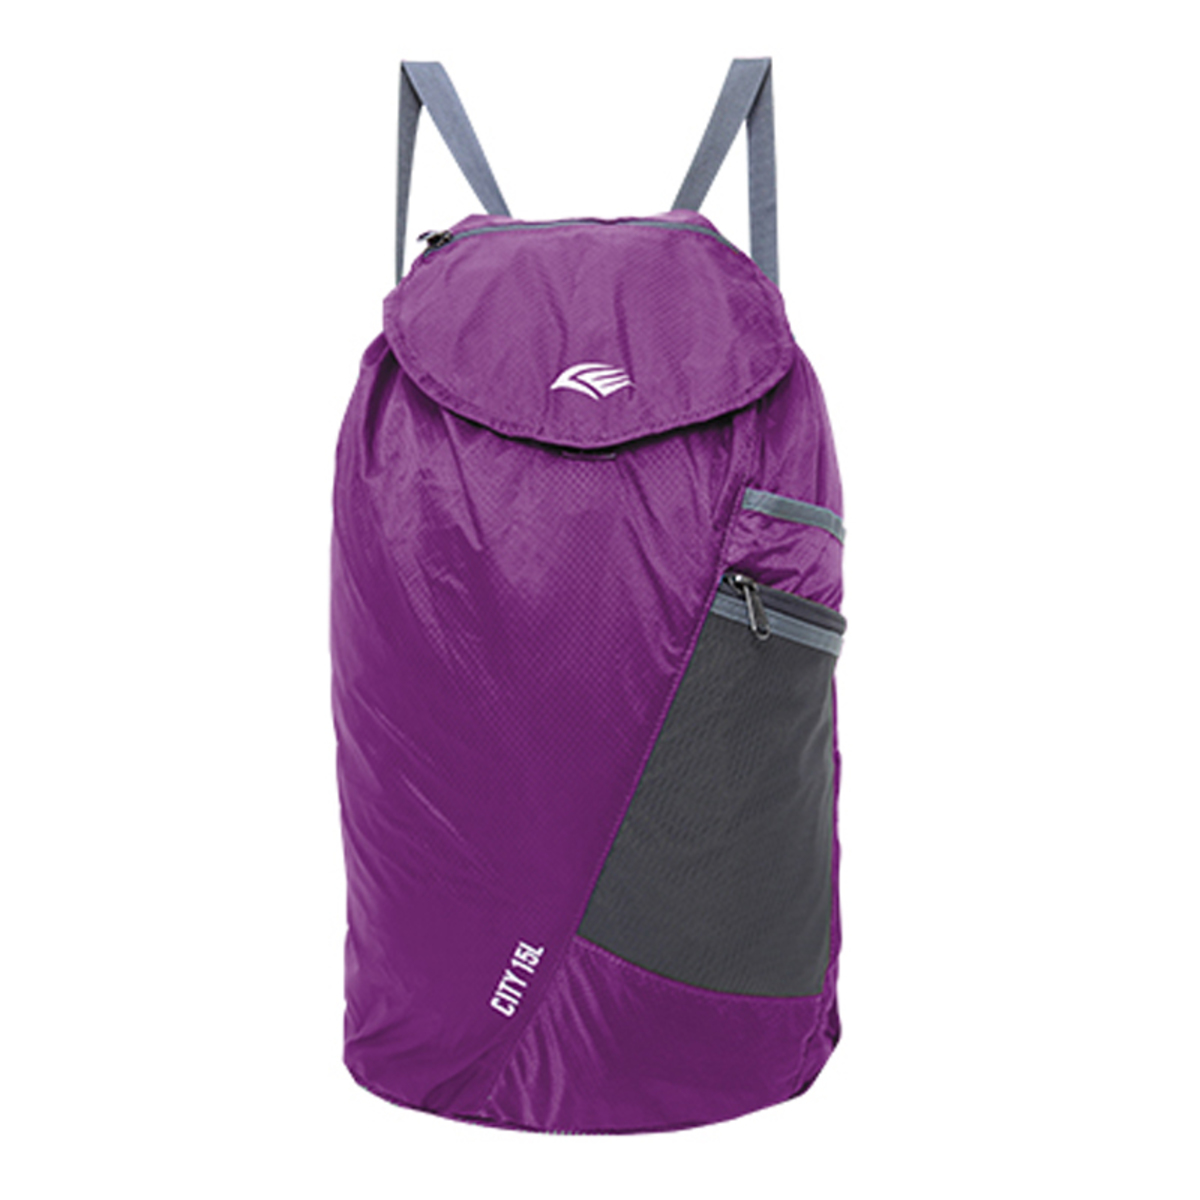 Packable City 15L Backpack